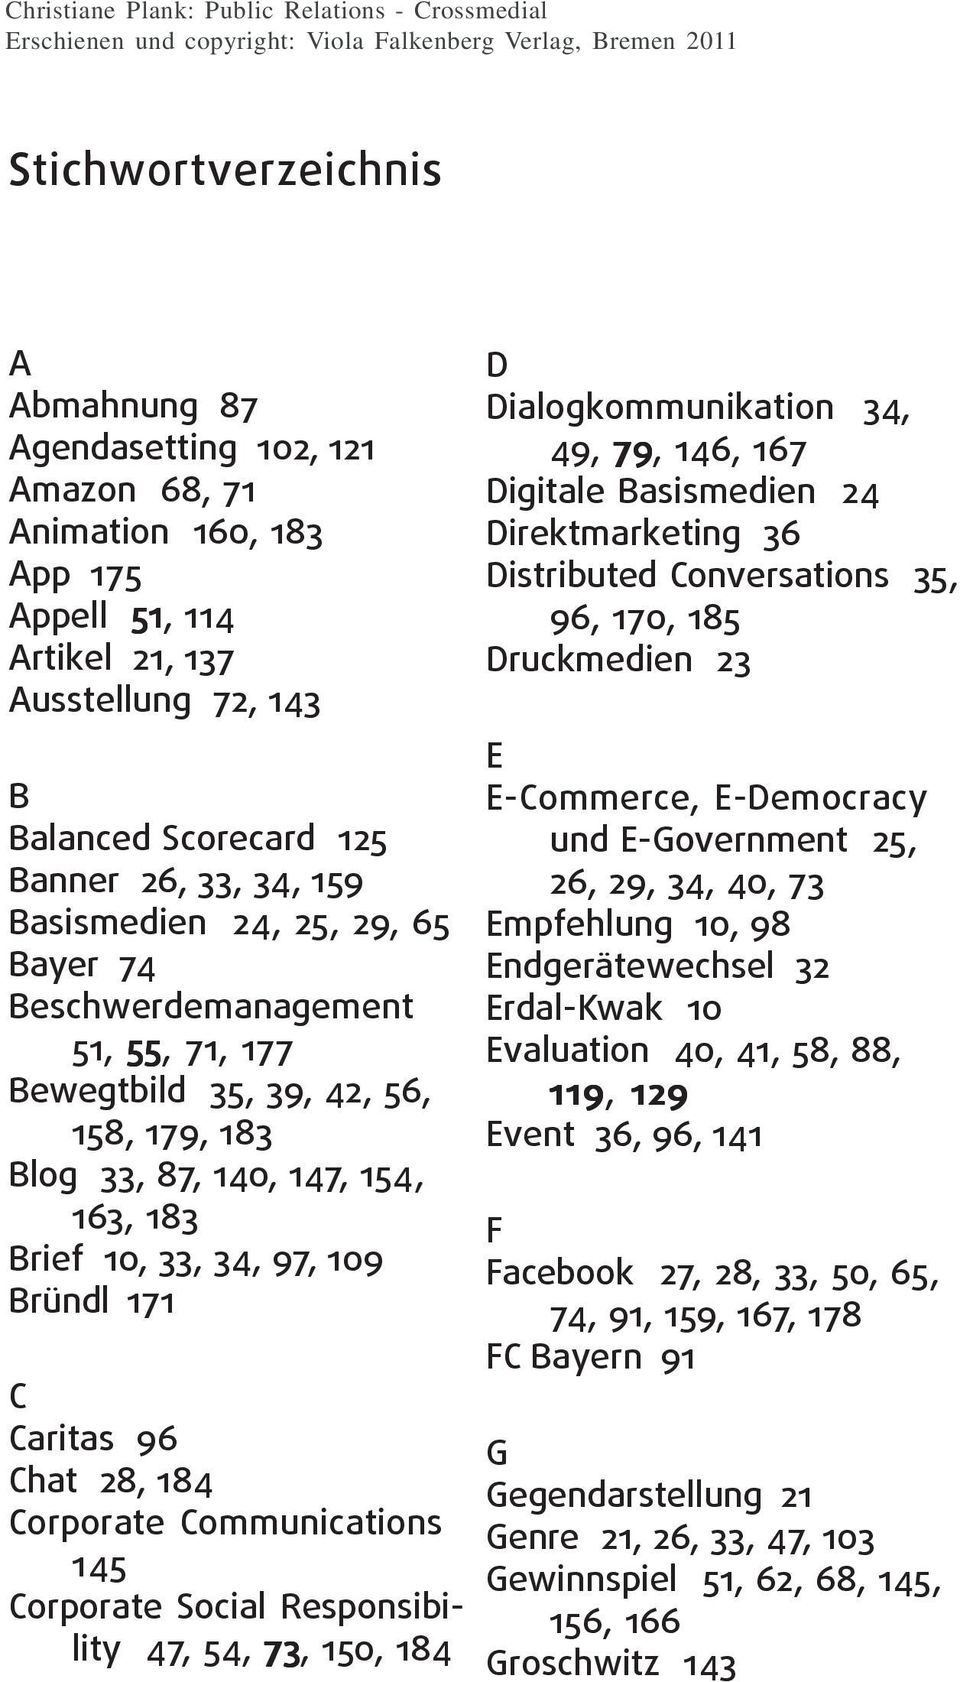 96 Chat 28, 184 Corporate Communications 145 Corporate Social Responsibility 47, 54, 73, 150, 184 D Dialogkommunikation 34, 49, 79, 146, 167 Digitale Basismedien 24 Direktmarketing 36 Distributed